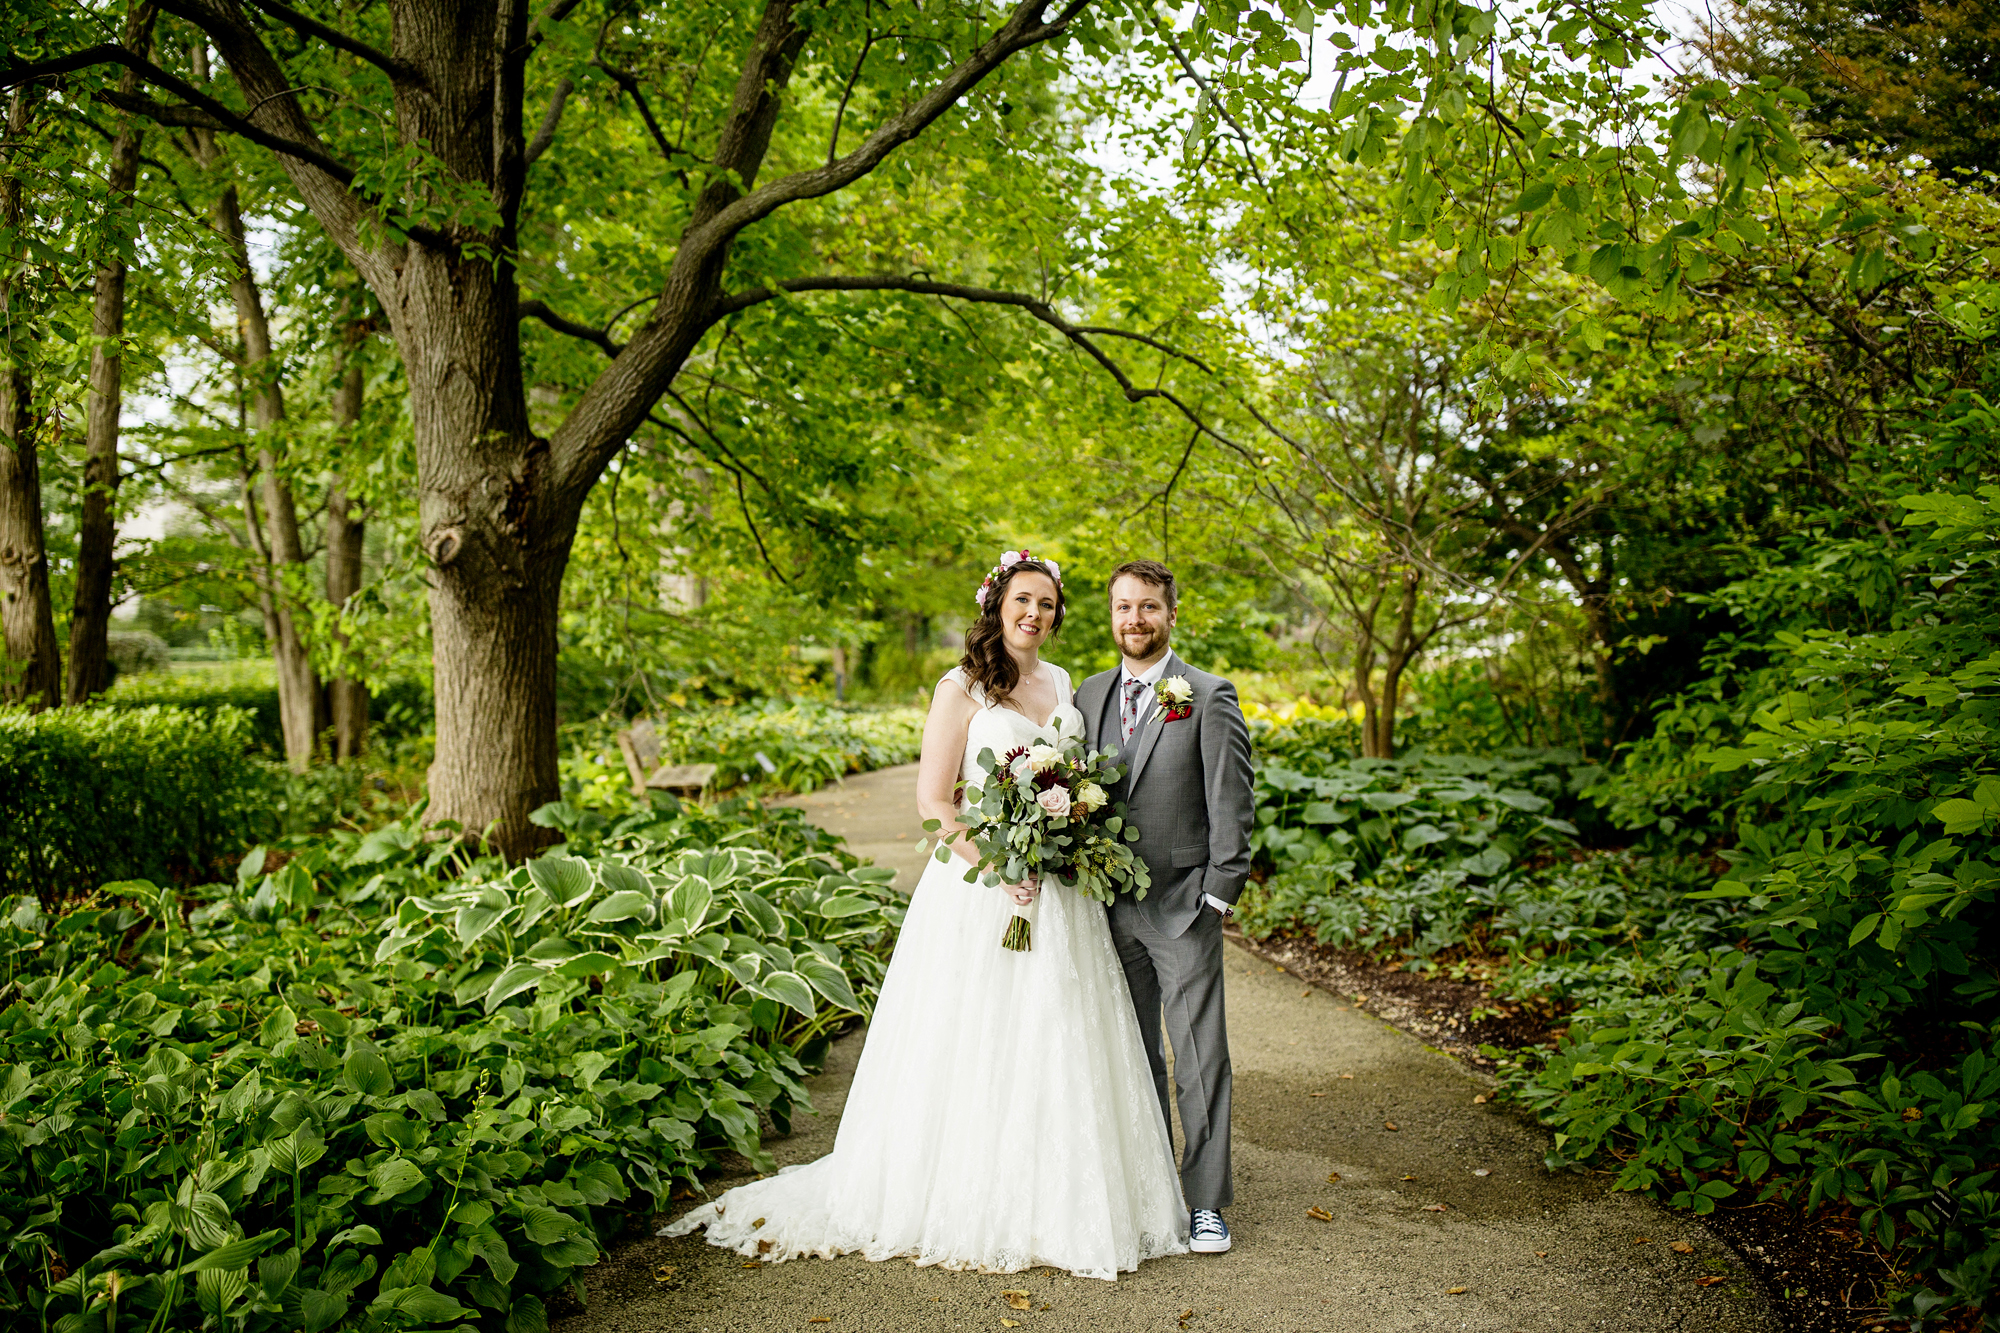 Seriously_Sabrina_Photography_Lisle_Illinois_Morton_Arboretum_Wedding_Day_Gowen43.jpg